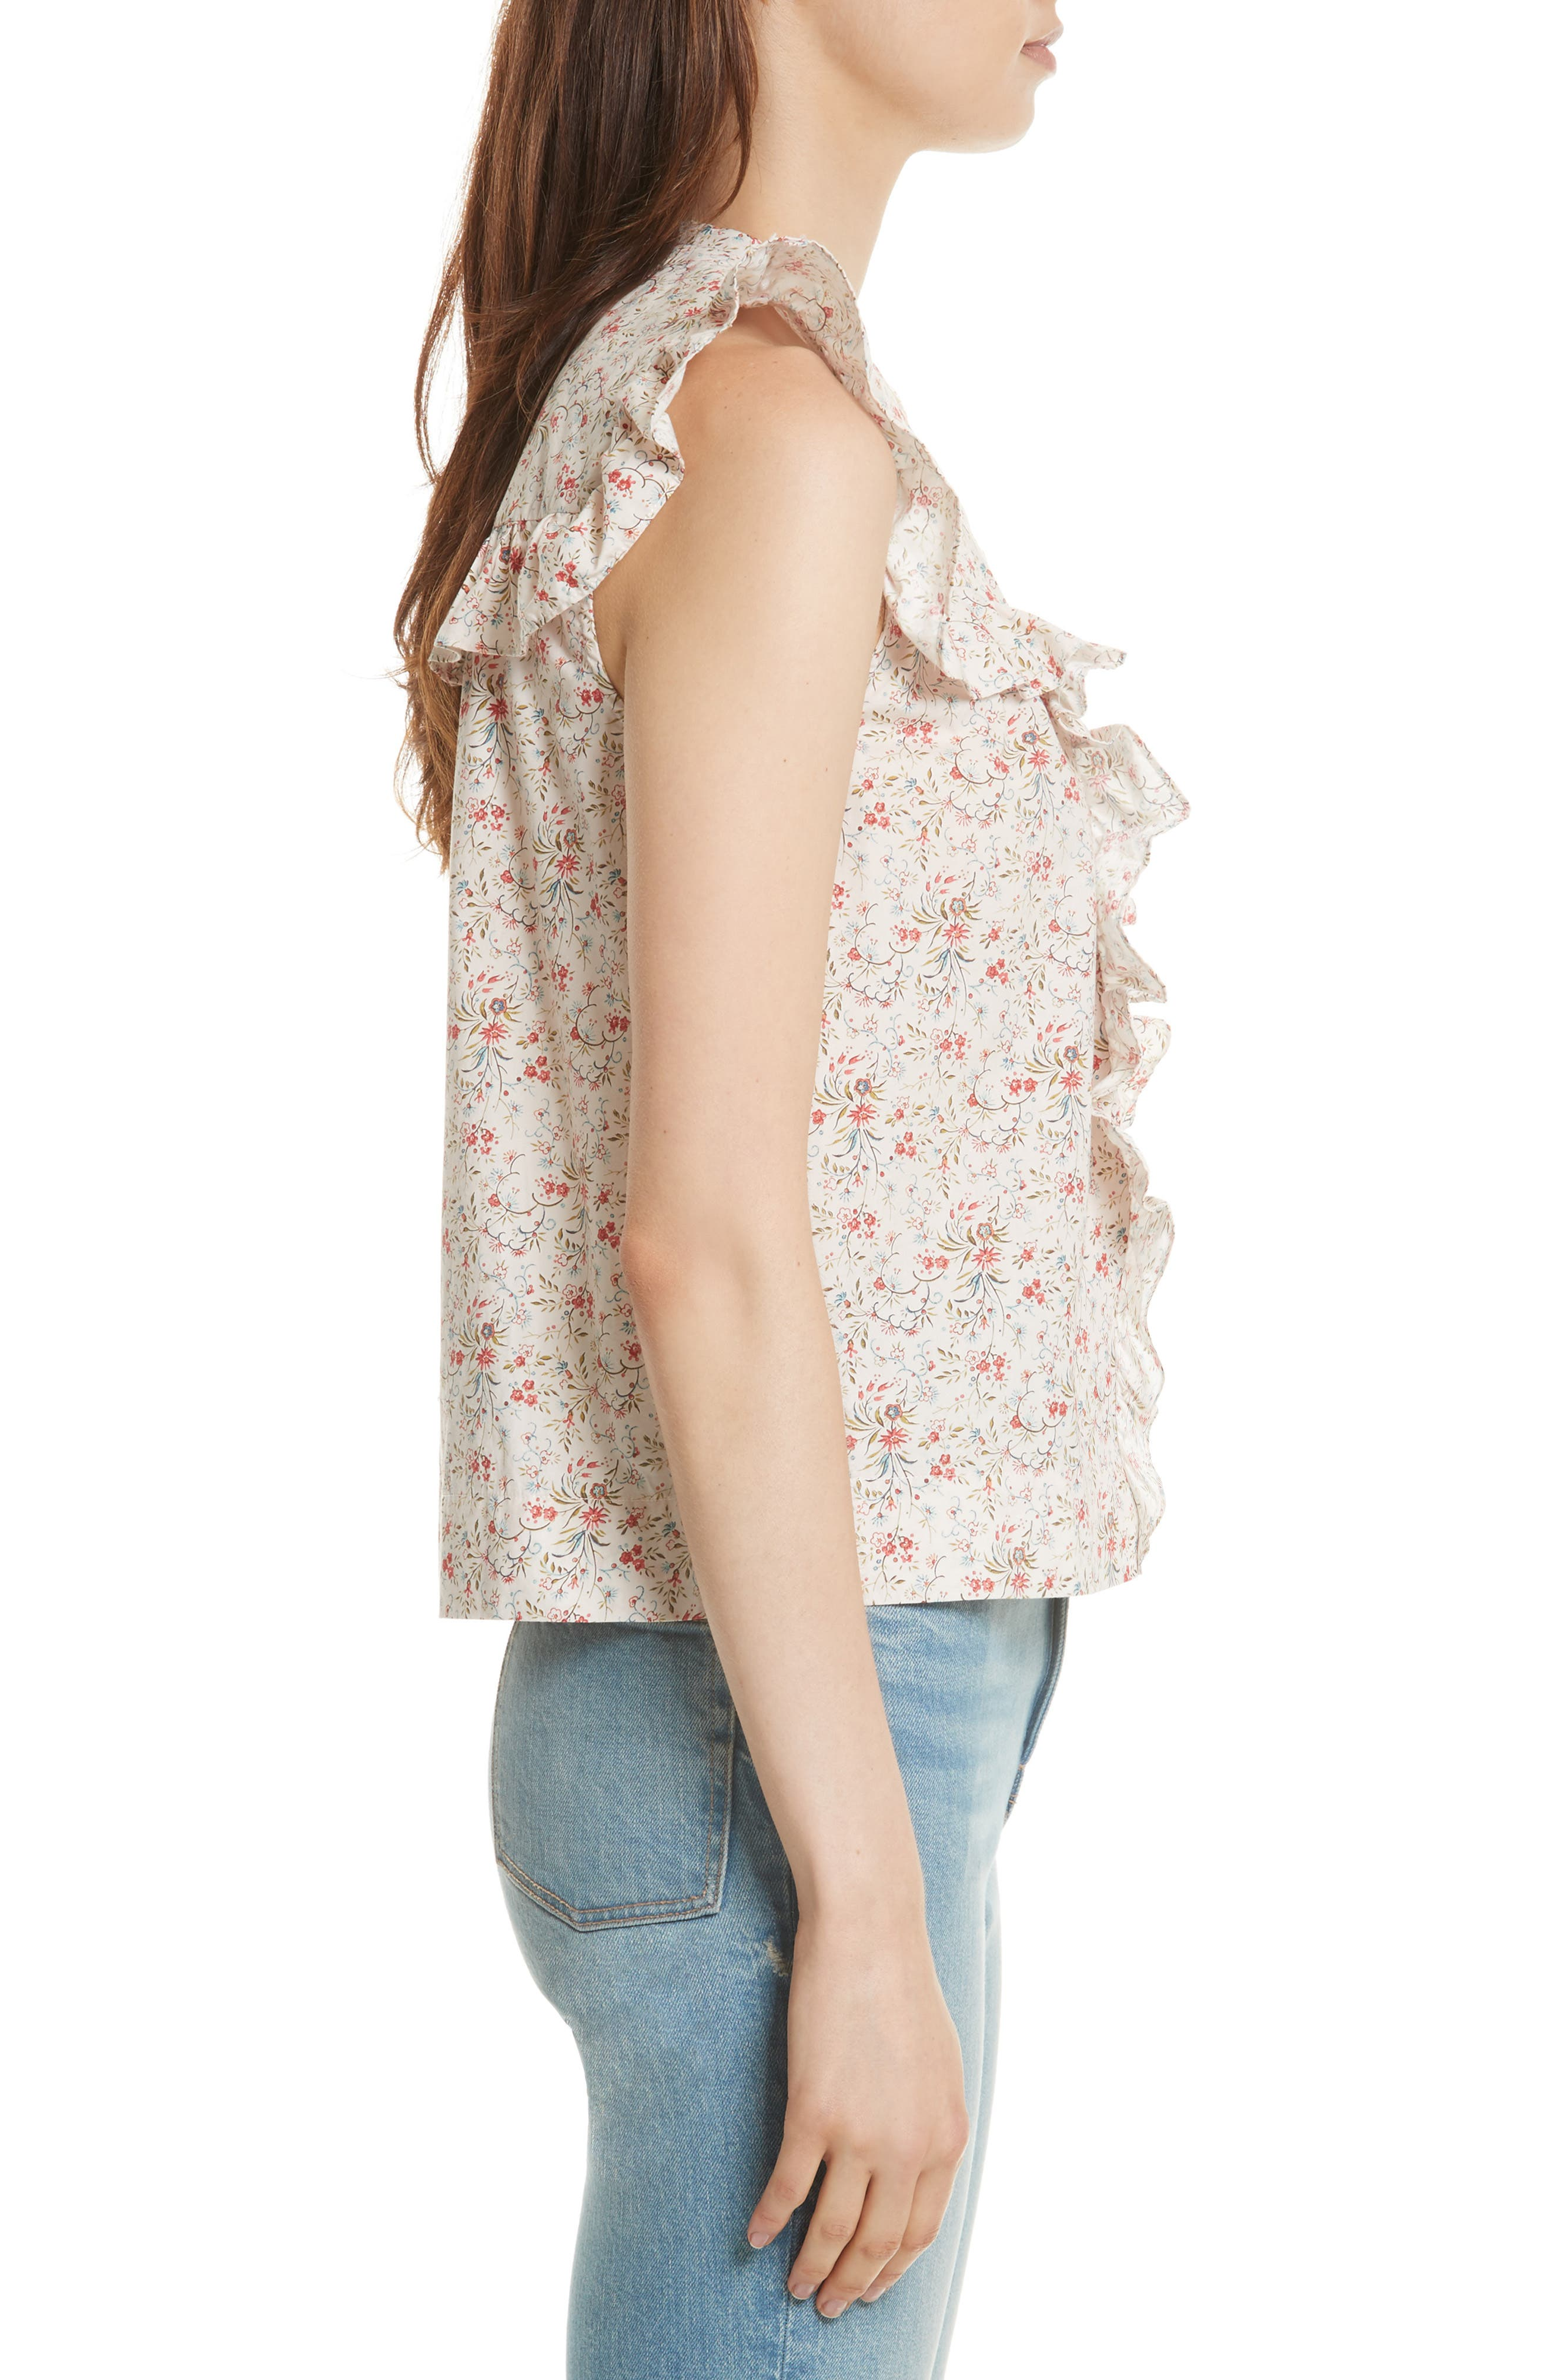 Brittany Sleeveless Floral Blouse,                             Alternate thumbnail 3, color,                             902